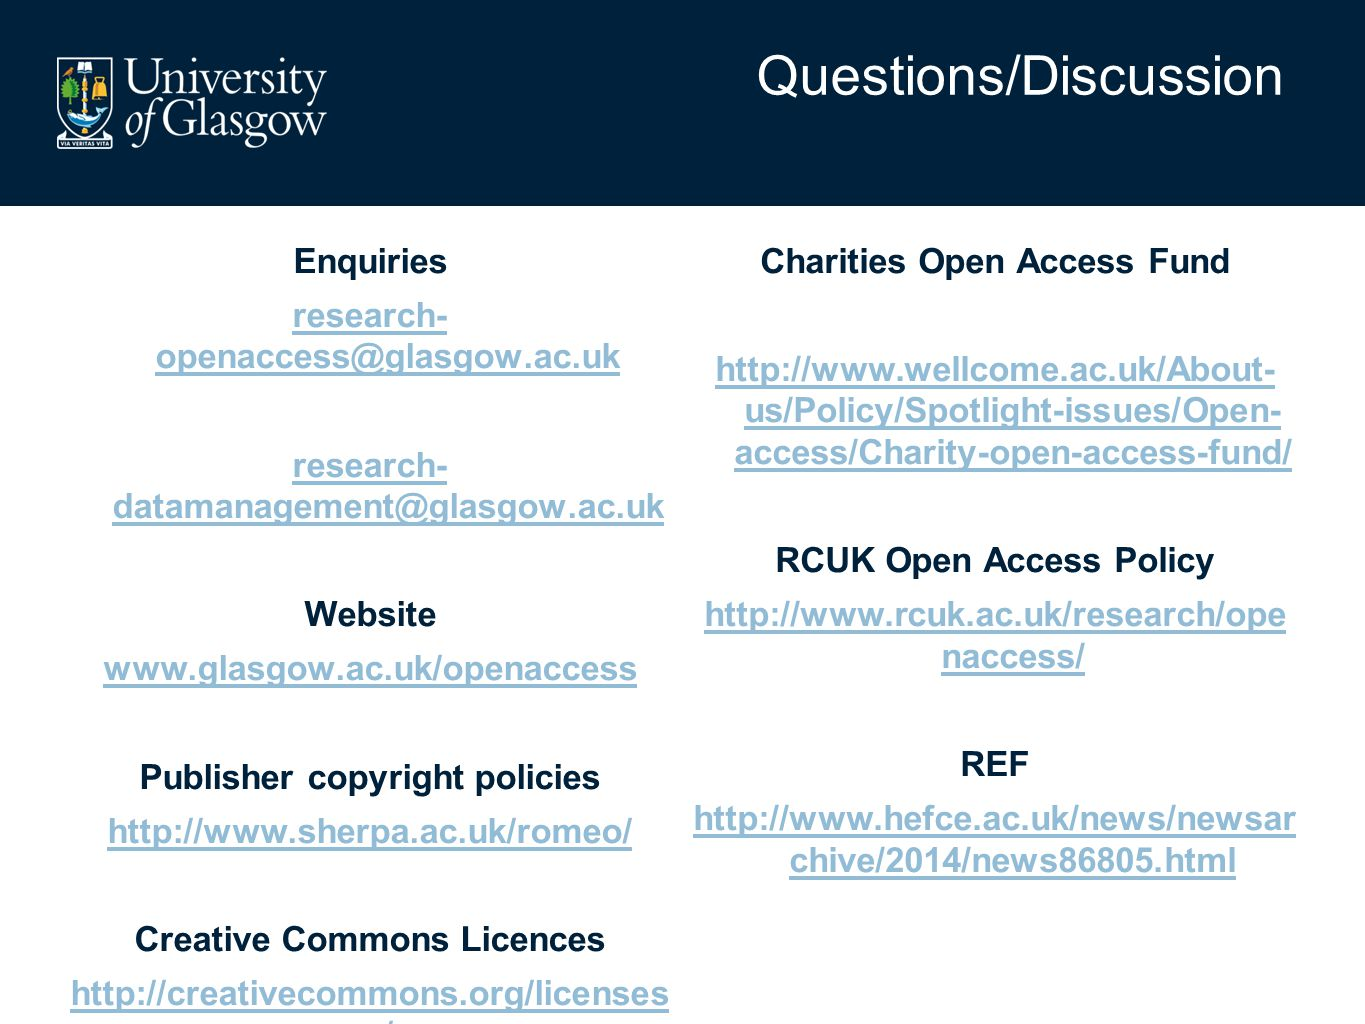 Enquiries research- openaccess@glasgow.ac.uk research- datamanagement@glasgow.ac.uk Website www.glasgow.ac.uk/openaccess Publisher copyright policies http://www.sherpa.ac.uk/romeo/ Creative Commons Licences http://creativecommons.org/licenses / Charities Open Access Fund http://www.wellcome.ac.uk/About- us/Policy/Spotlight-issues/Open- access/Charity-open-access-fund/ RCUK Open Access Policy http://www.rcuk.ac.uk/research/ope naccess/ REF http://www.hefce.ac.uk/news/newsar chive/2014/news86805.html Questions/Discussion